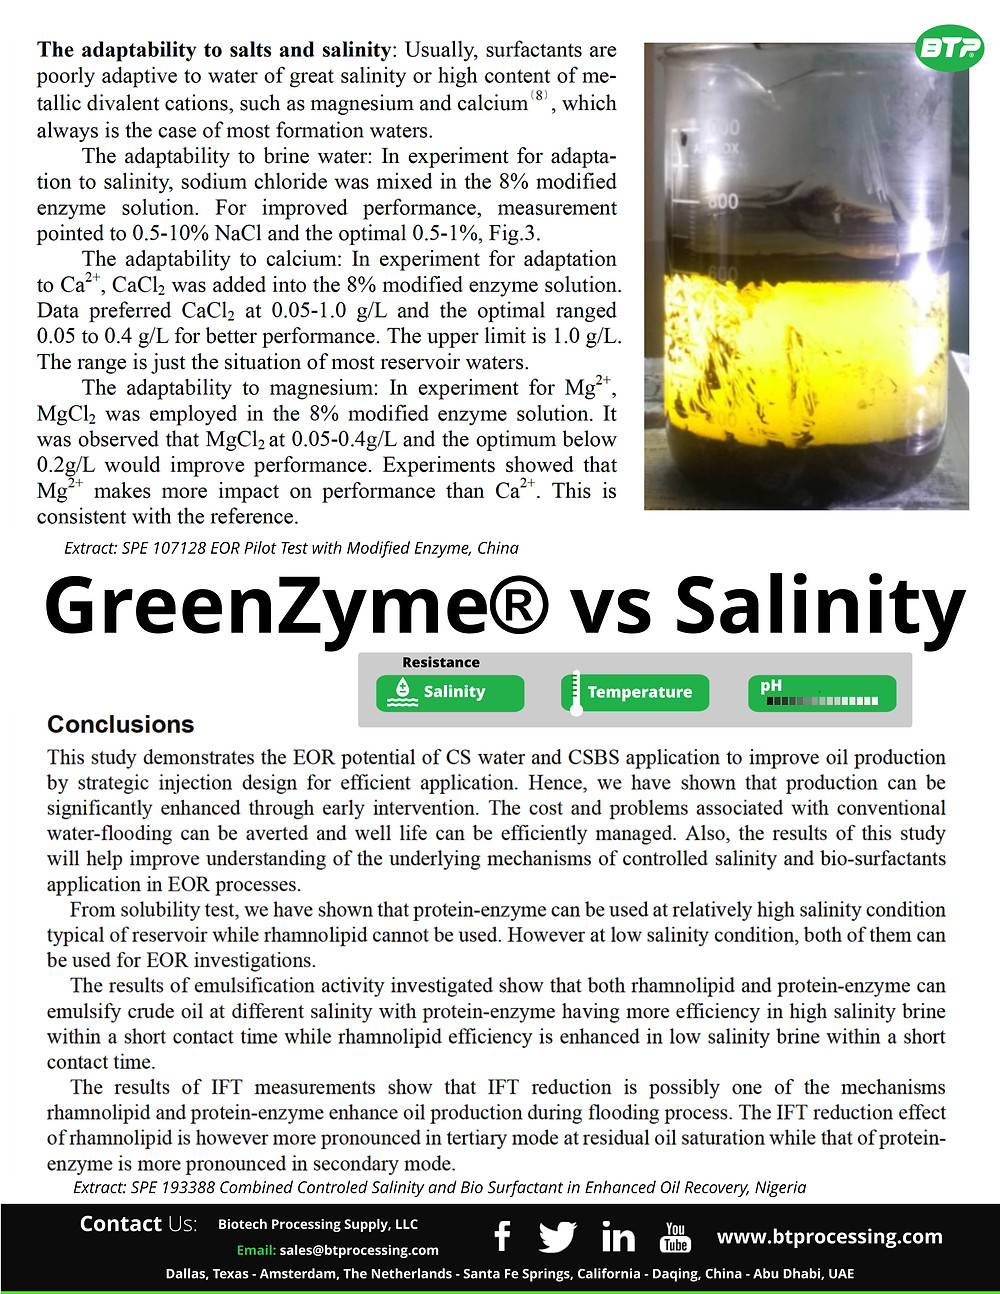 GreenZyme extract interaction with salts to liberate trapped oil